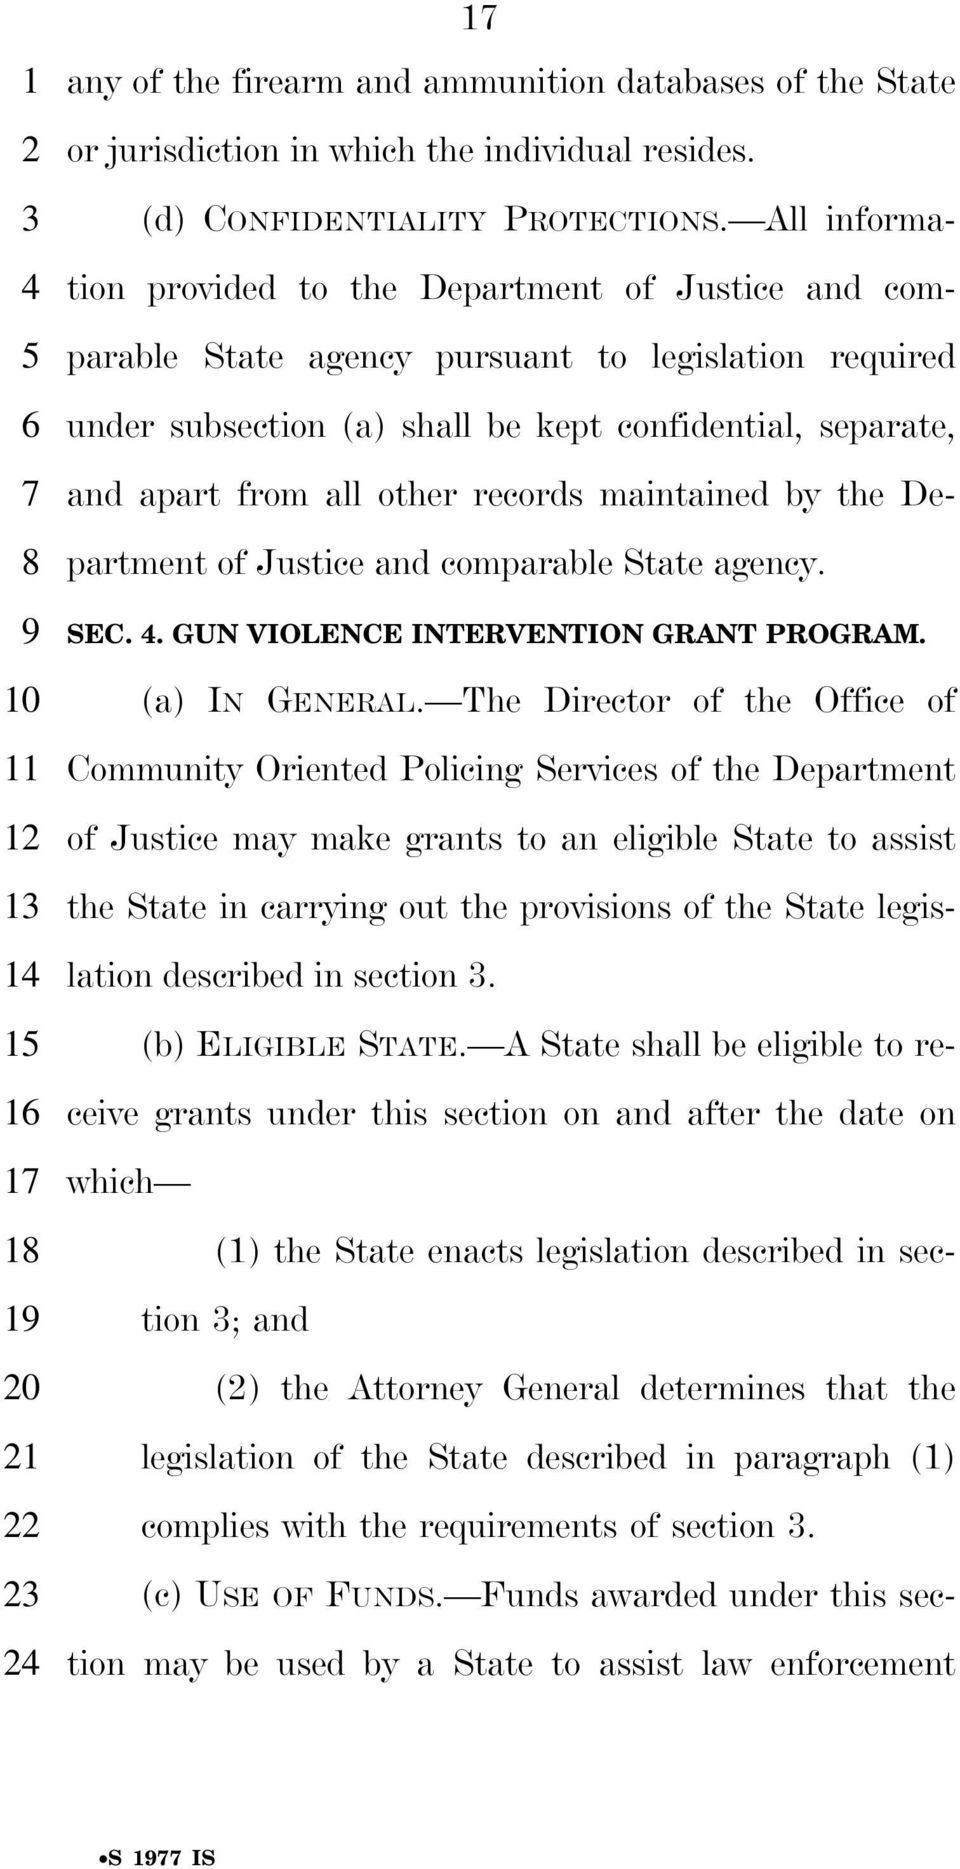 other records maintained by the De- partment of Justice and comparable State agency. SEC.. GUN VIOLENCE INTERVENTION GRANT PROGRAM. (a) IN GENERAL.